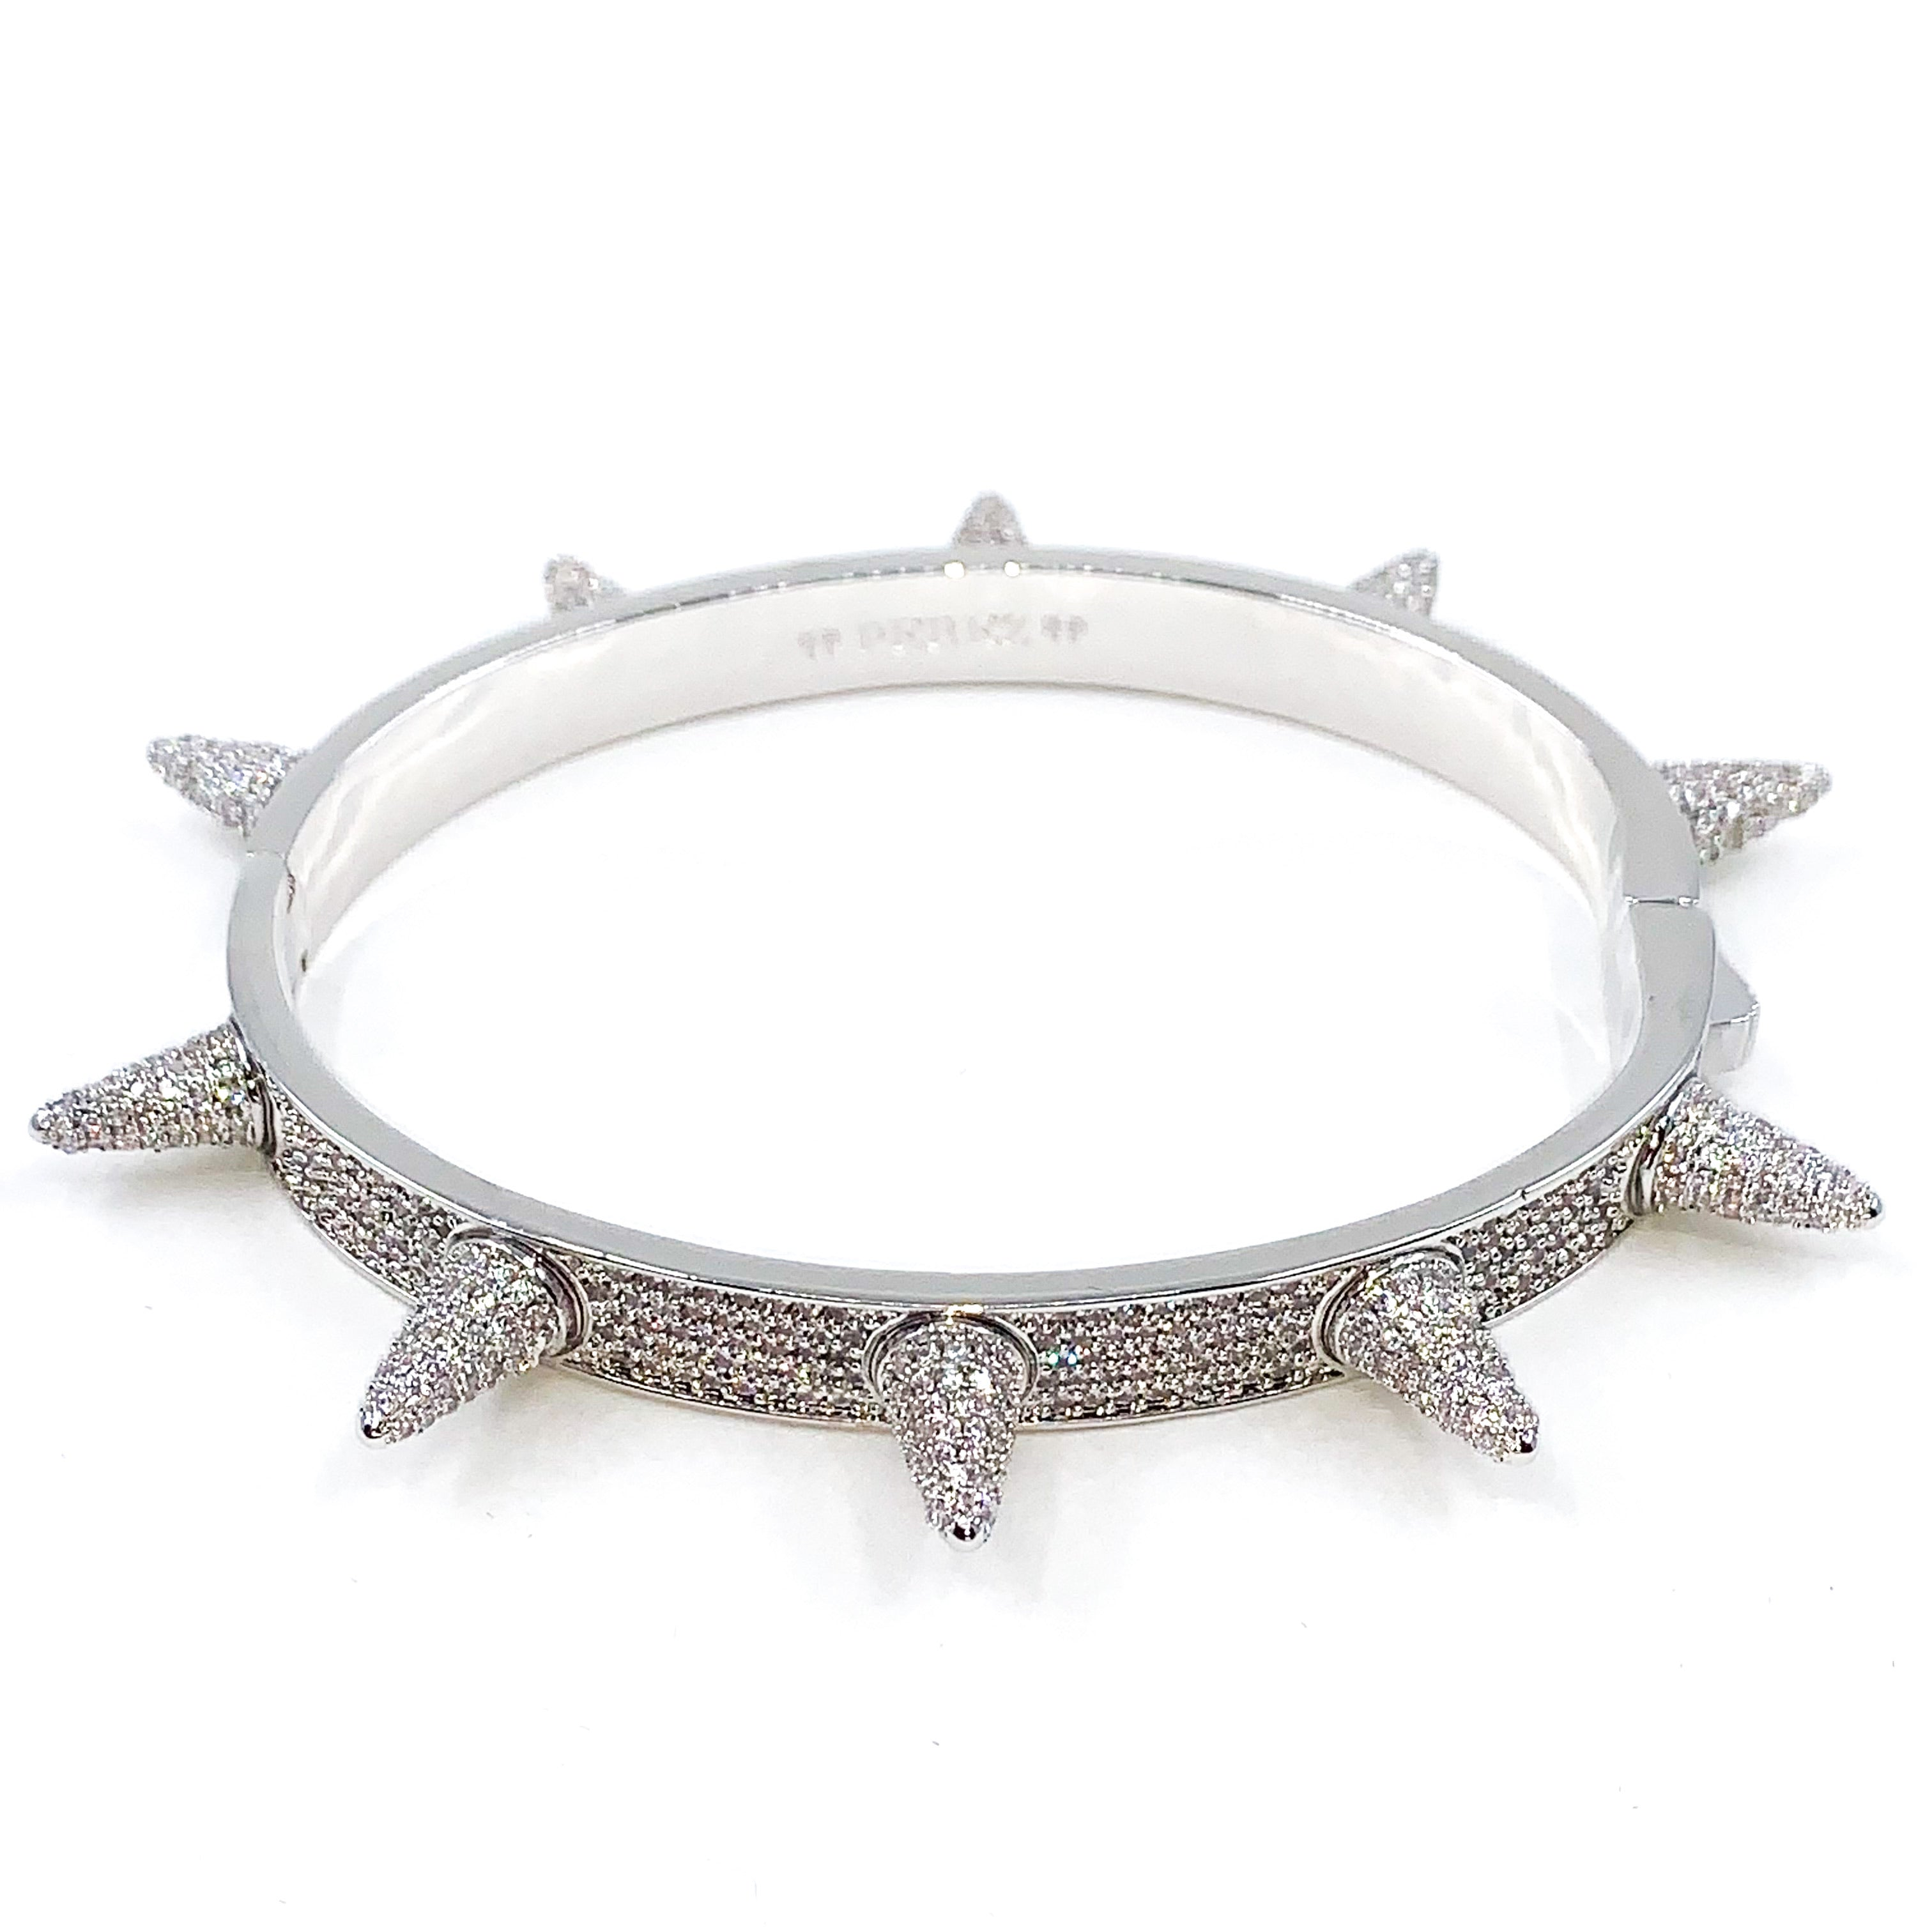 PEREZ-ICED-SPIKED-BRACELET-WHITE-GOLD